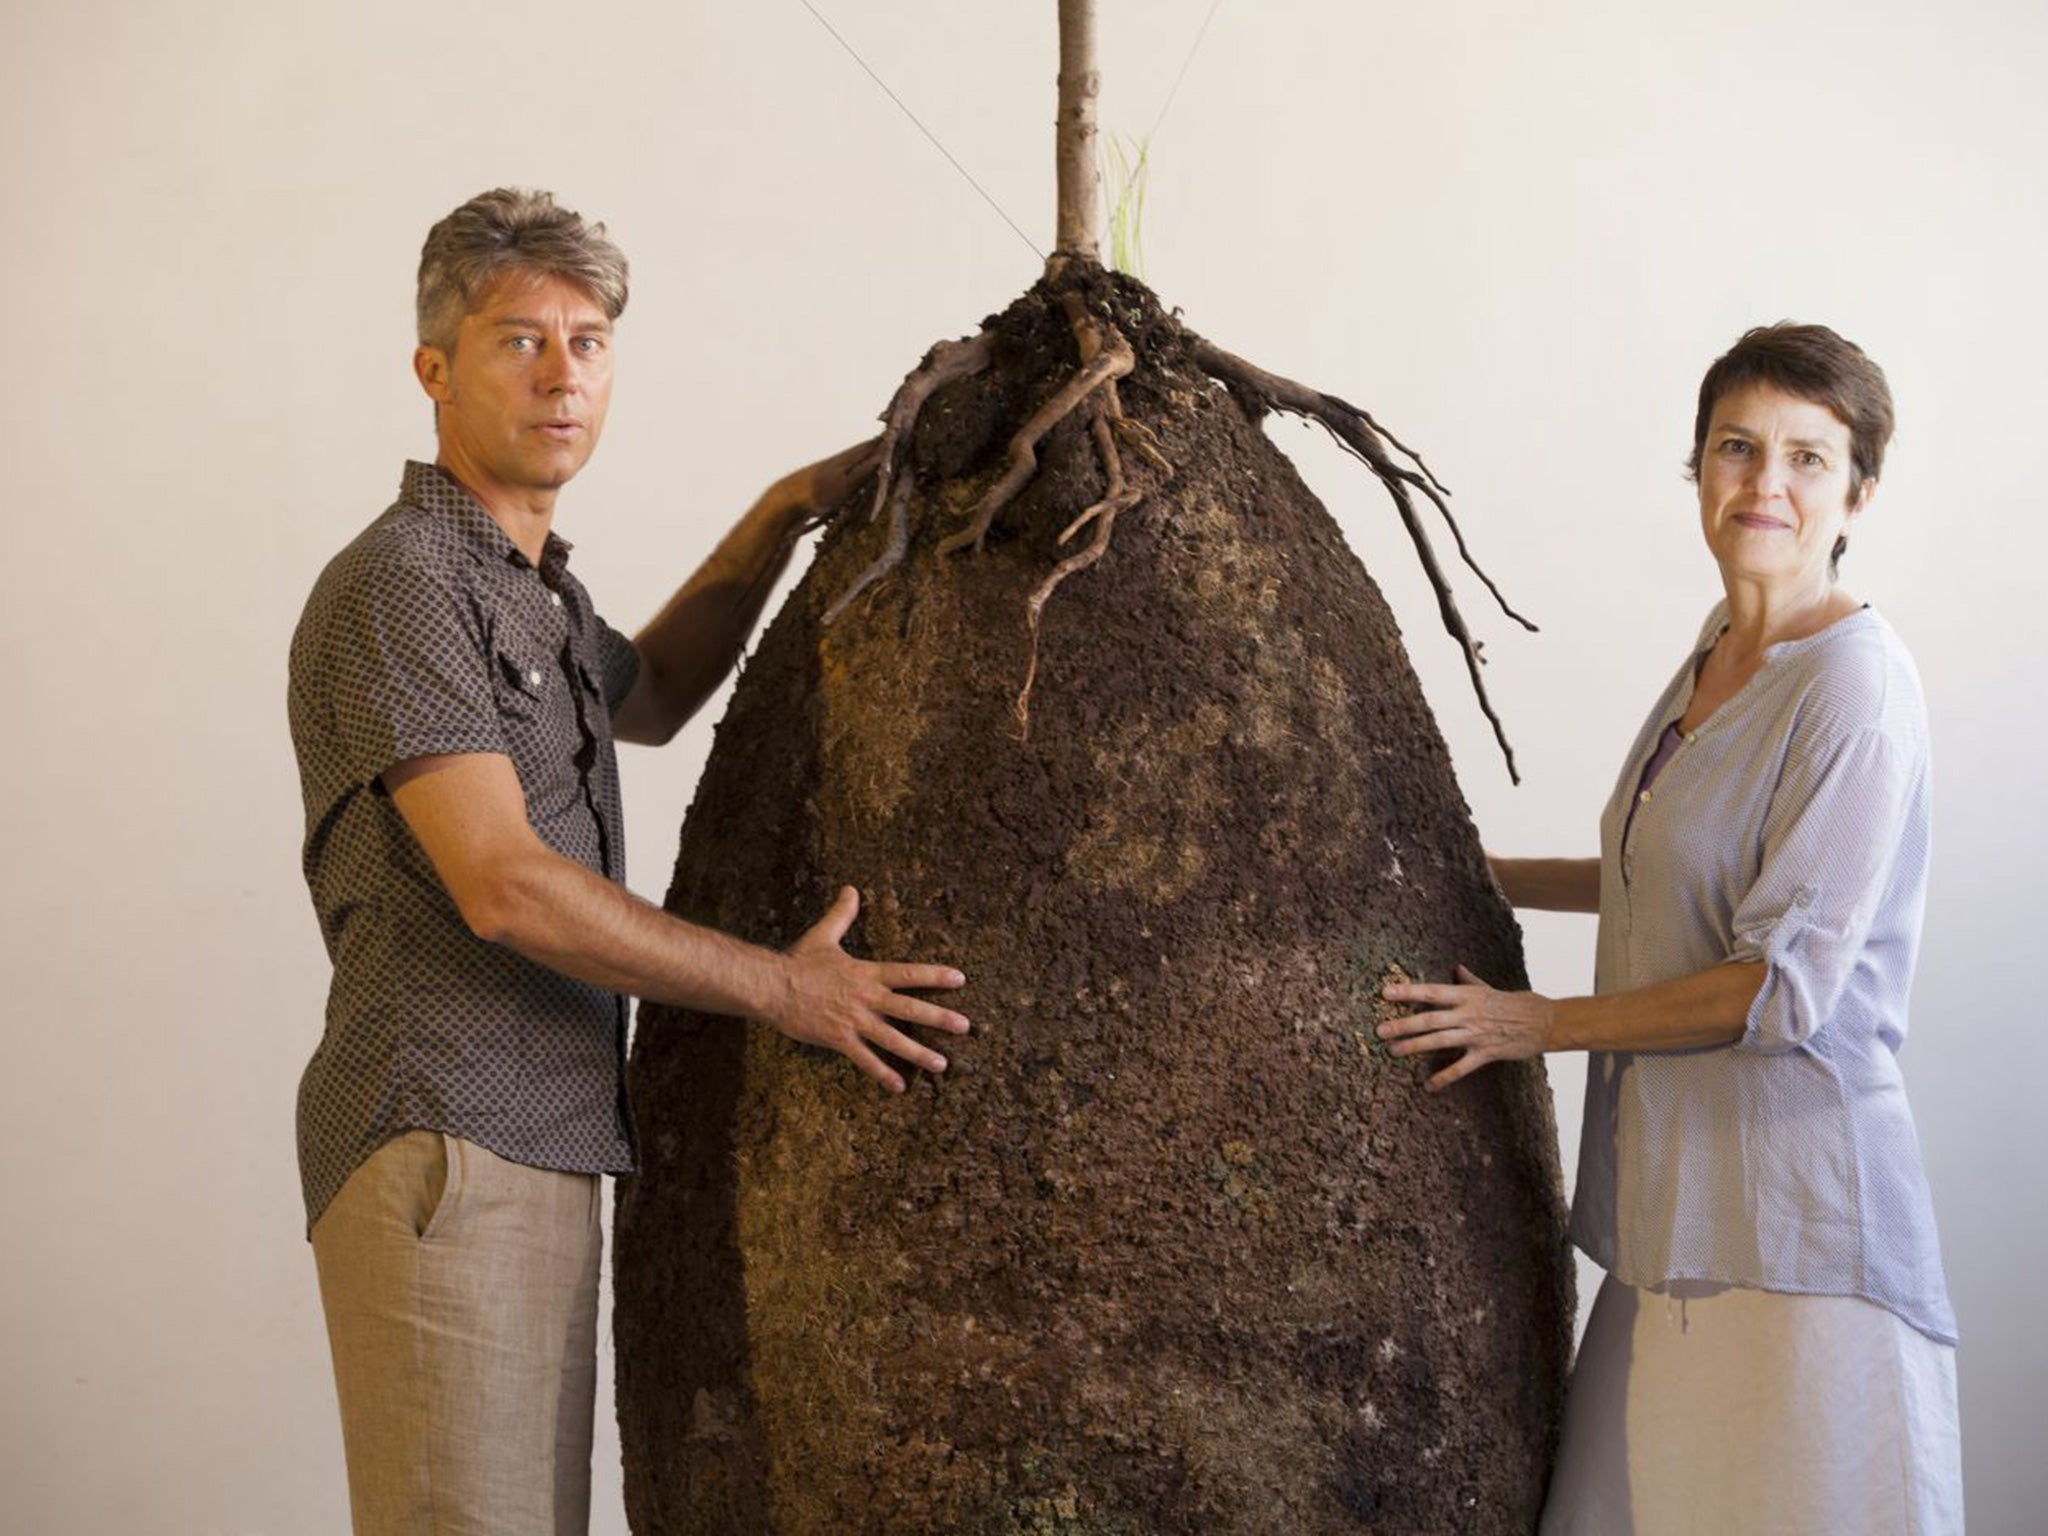 Green Burials Plans For New Biodegradable Human Seed Pods To - Capsula mundi burial pods